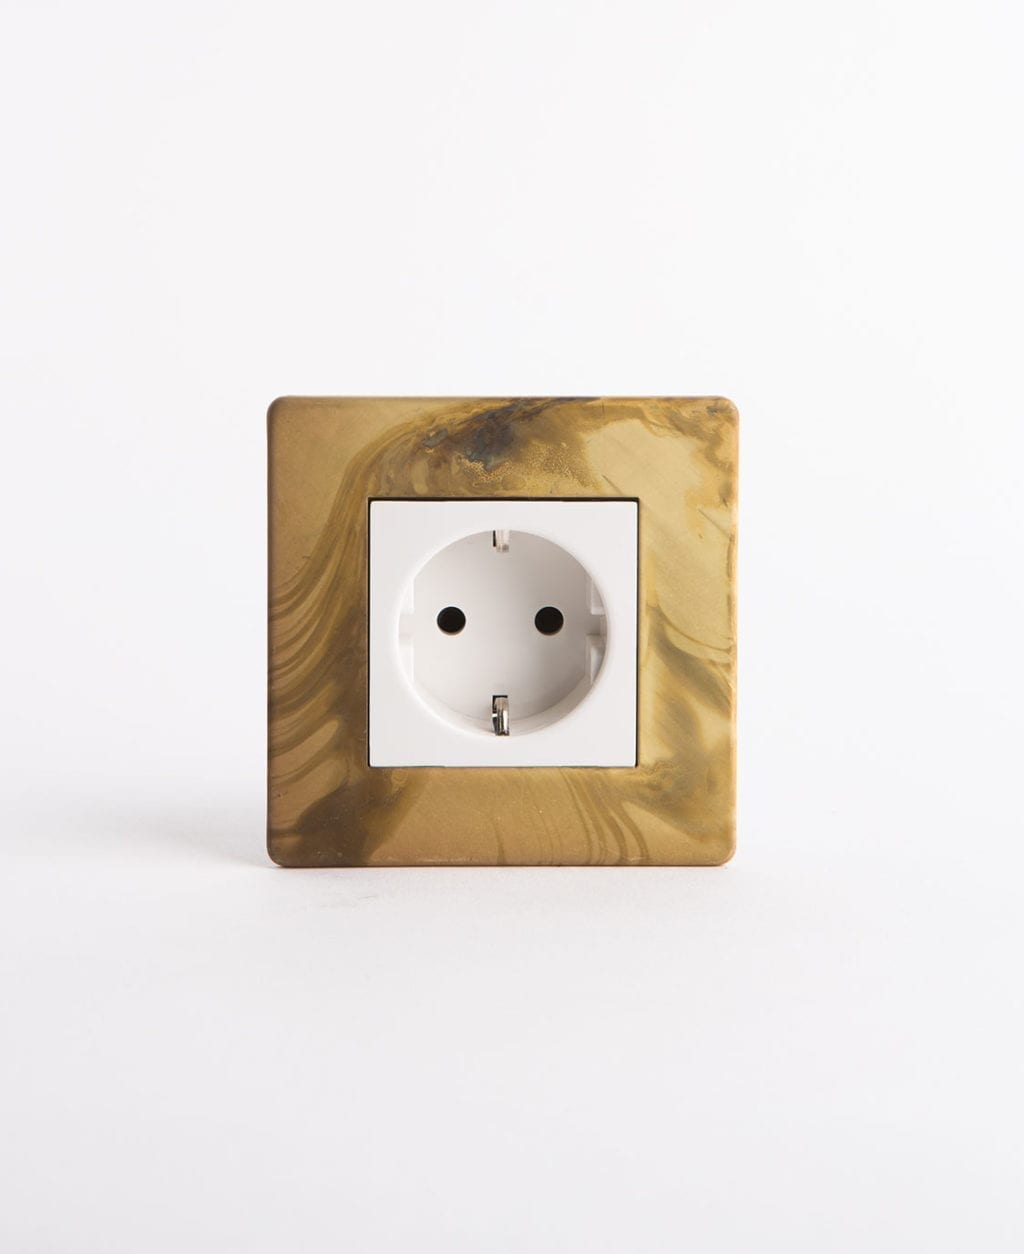 single Schuko socket in gold and white